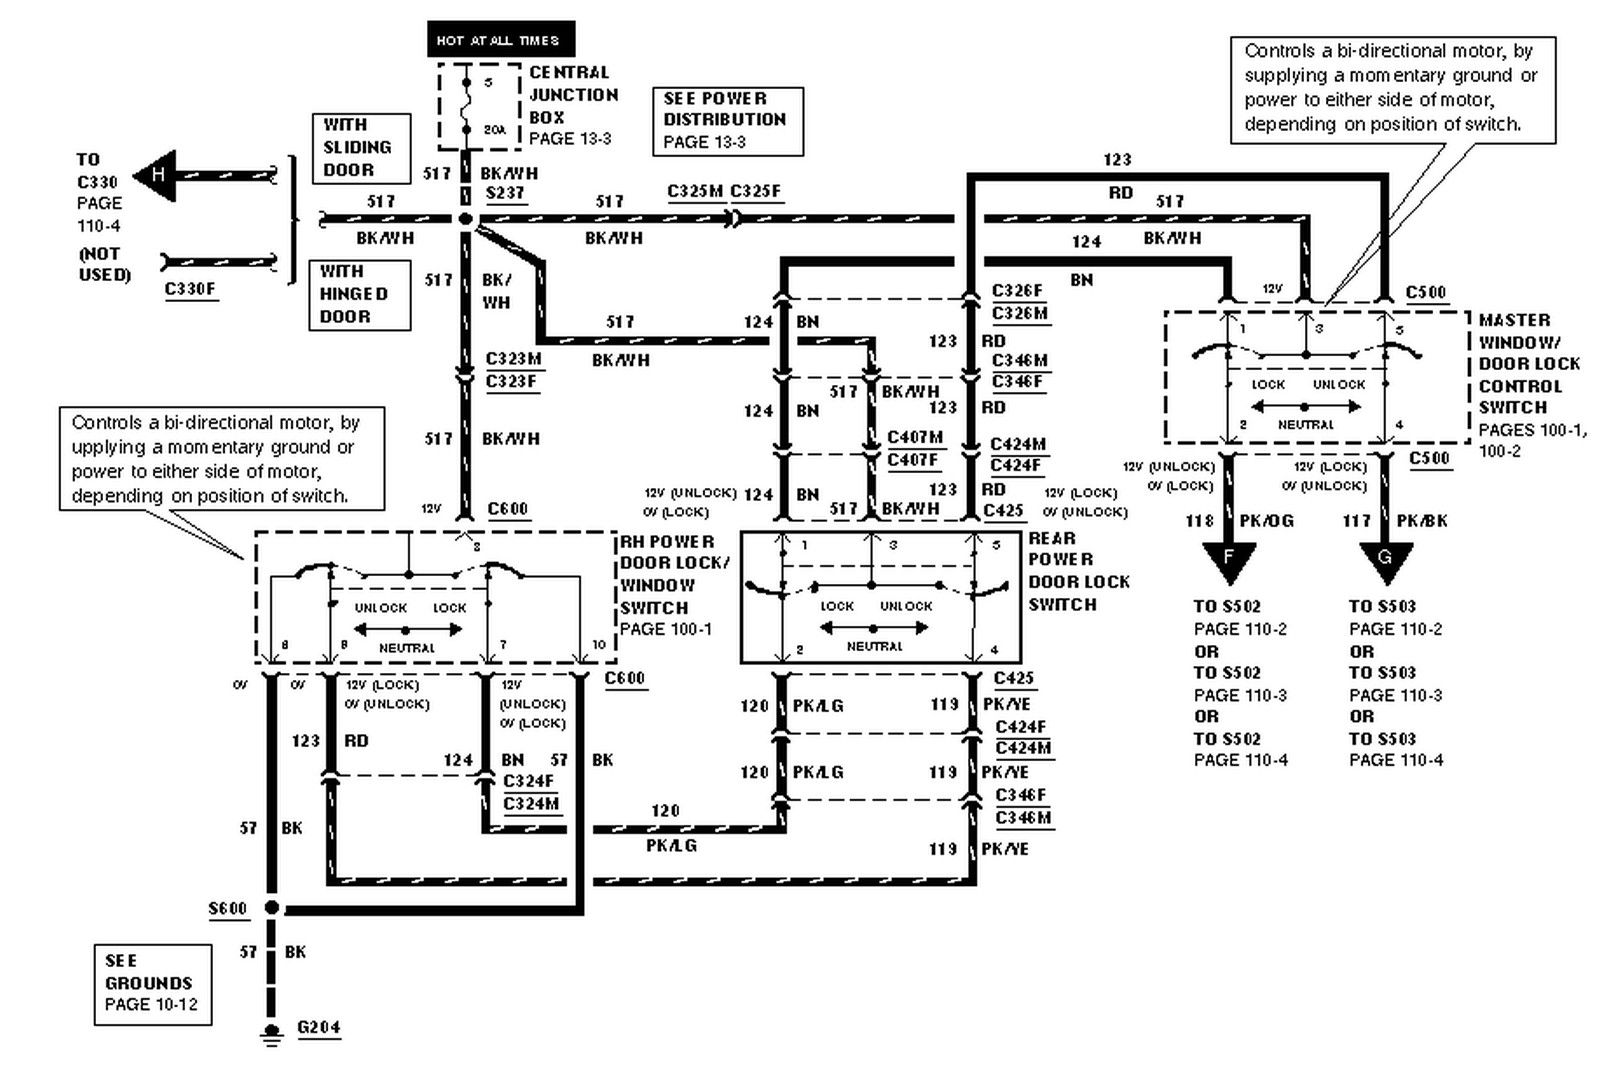 80 2010_11_05_235941_99_e_350_power_door_lock_wiring_diagram_e574233ae37af9677ff5fddb790386a28f9dd7ad ford f150 wiring diagram vehiclepad readingrat net Ford F-150 Starter Solenoid Wiring Diagram at eliteediting.co